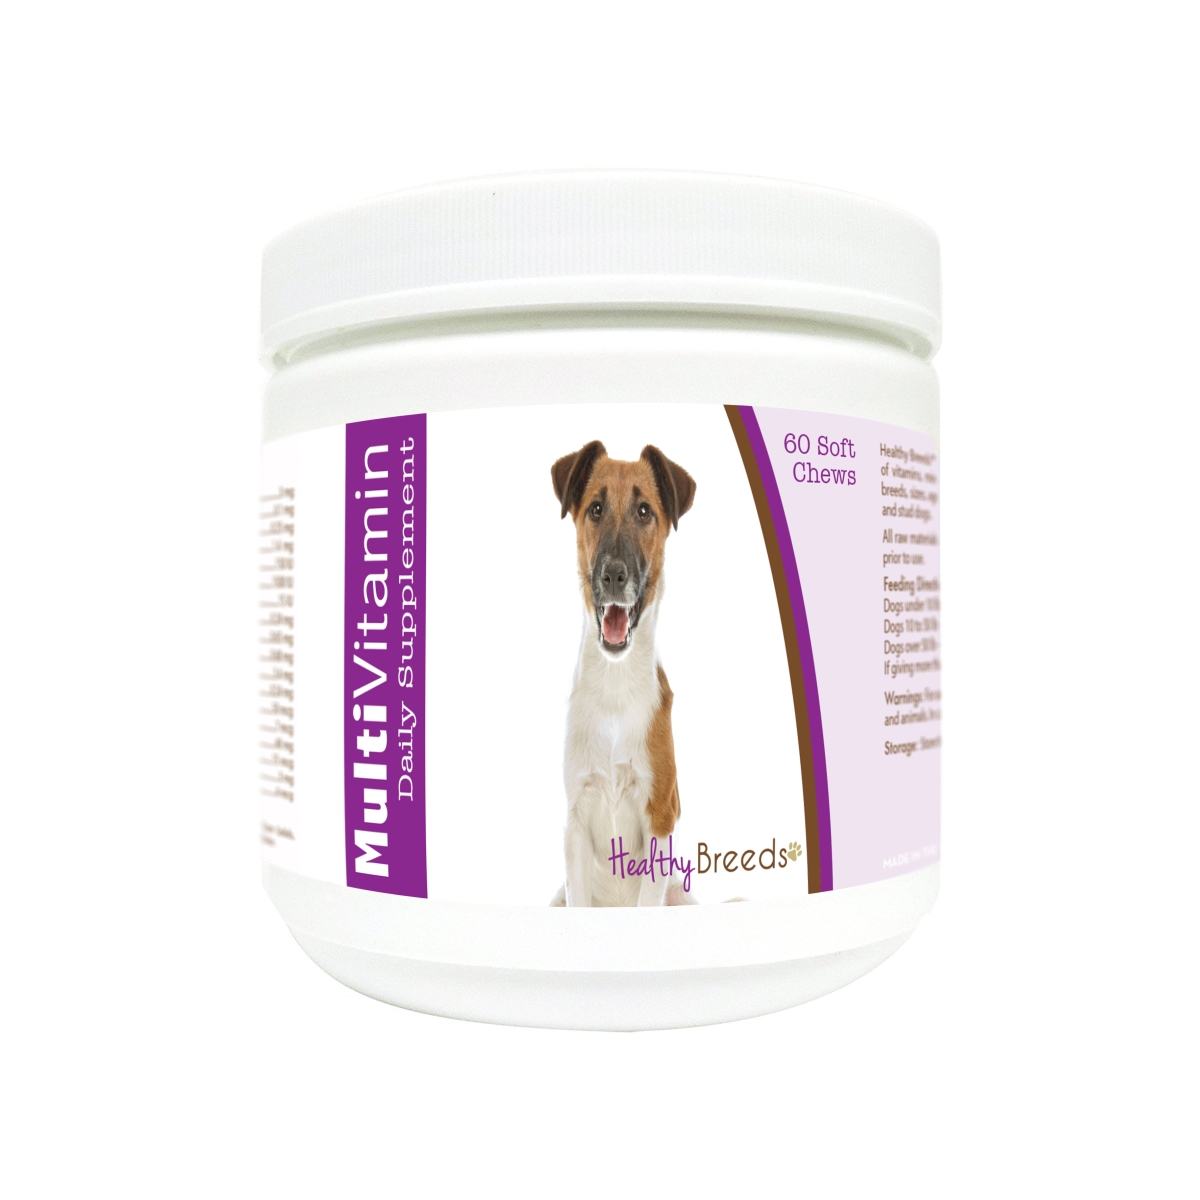 Healthy Breeds 840235171720 Smooth Fox Terrier Multi-Vitamin Soft Chews - 60 Count